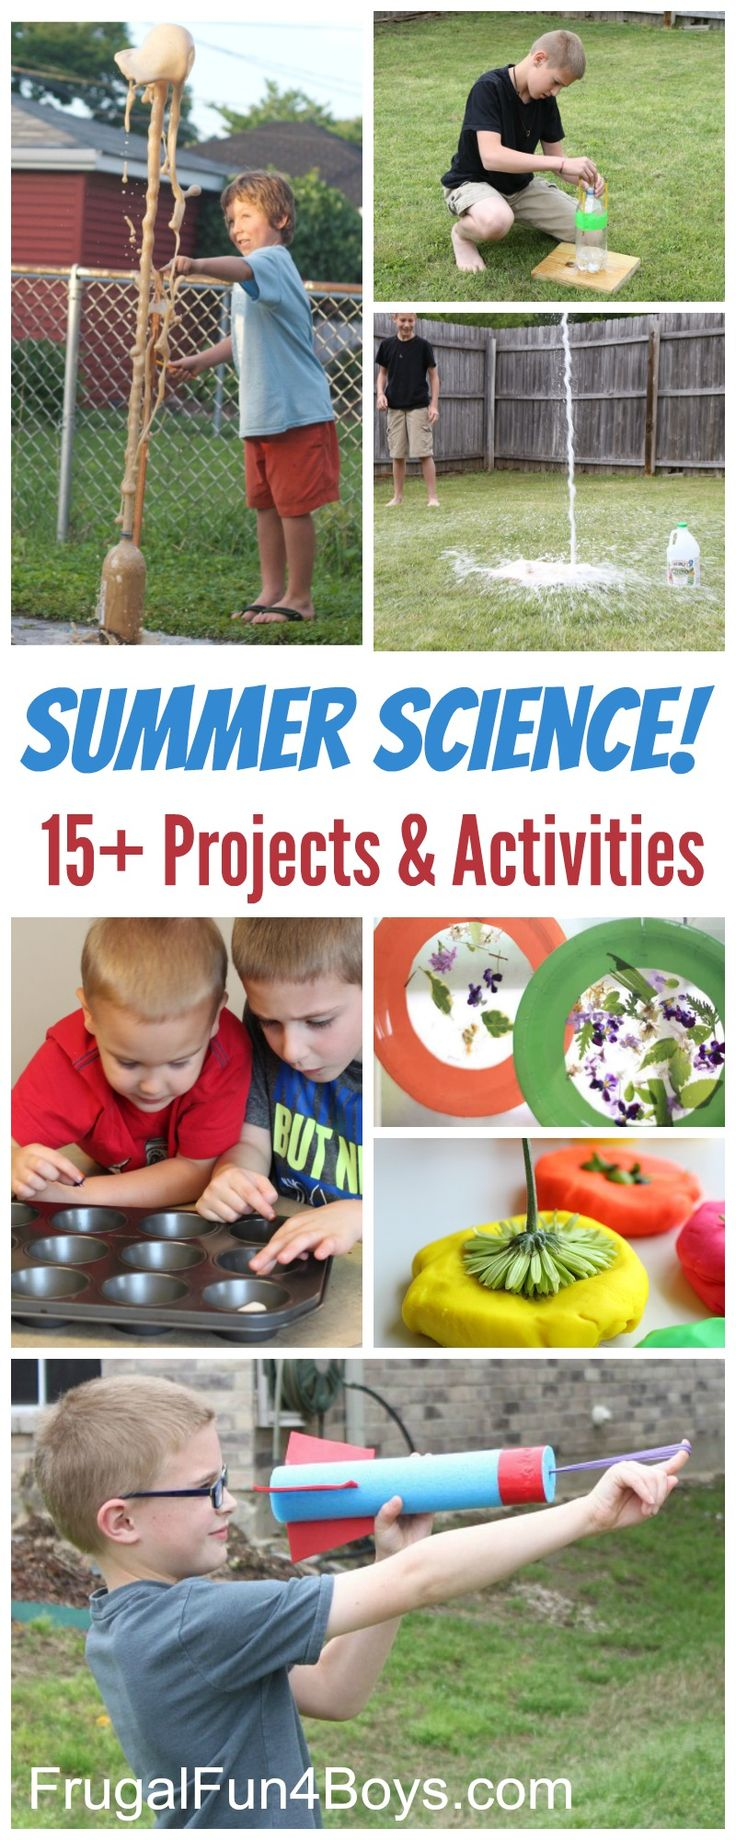 Summer Science Experiments and Activities for Kids!  Simple science demonstrations, experiments, and projects that are great to do in the summer.